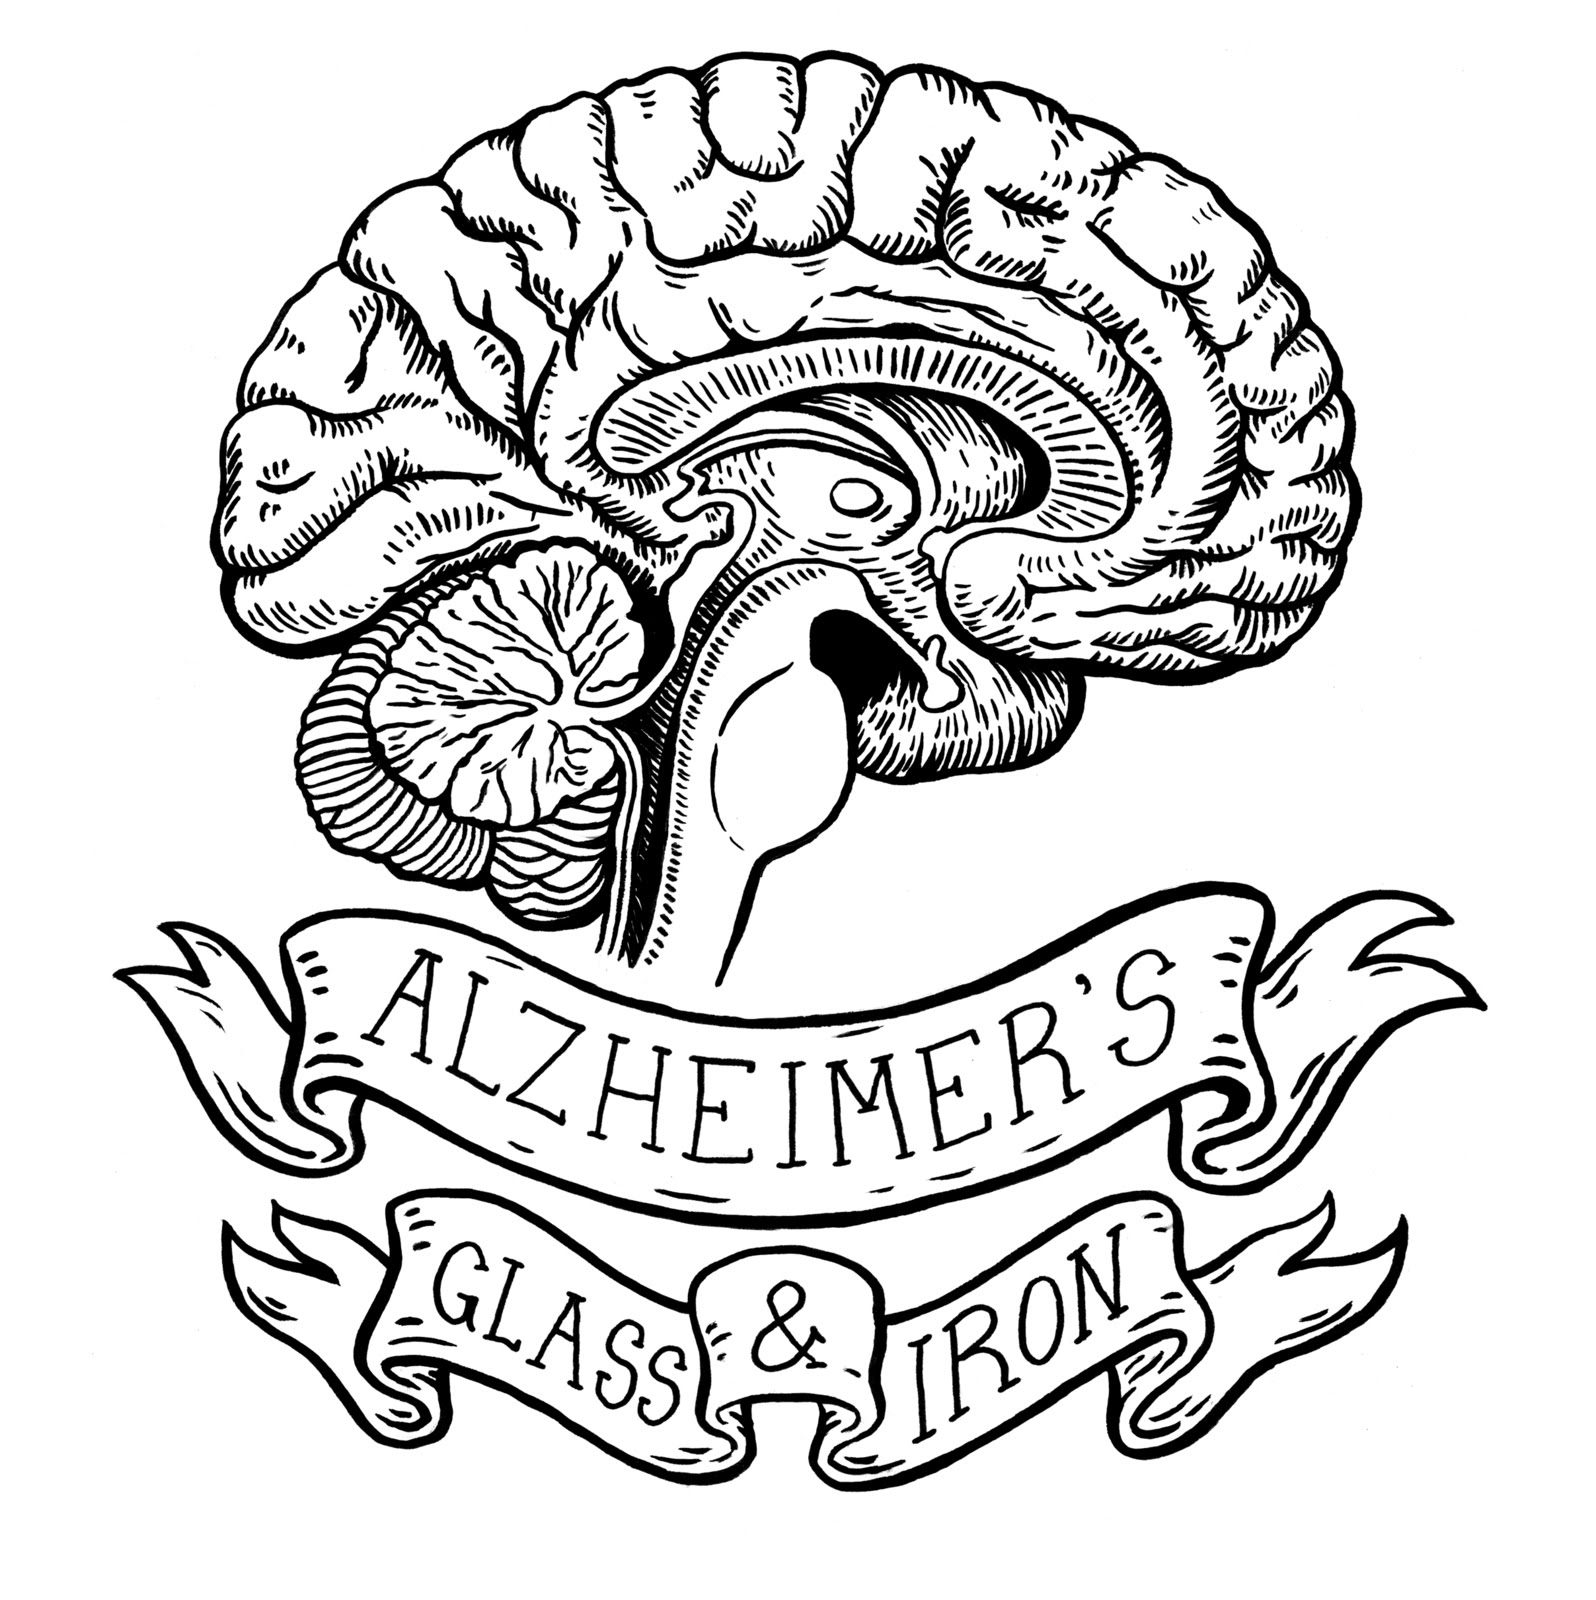 Alzheimer's Glass and Iron